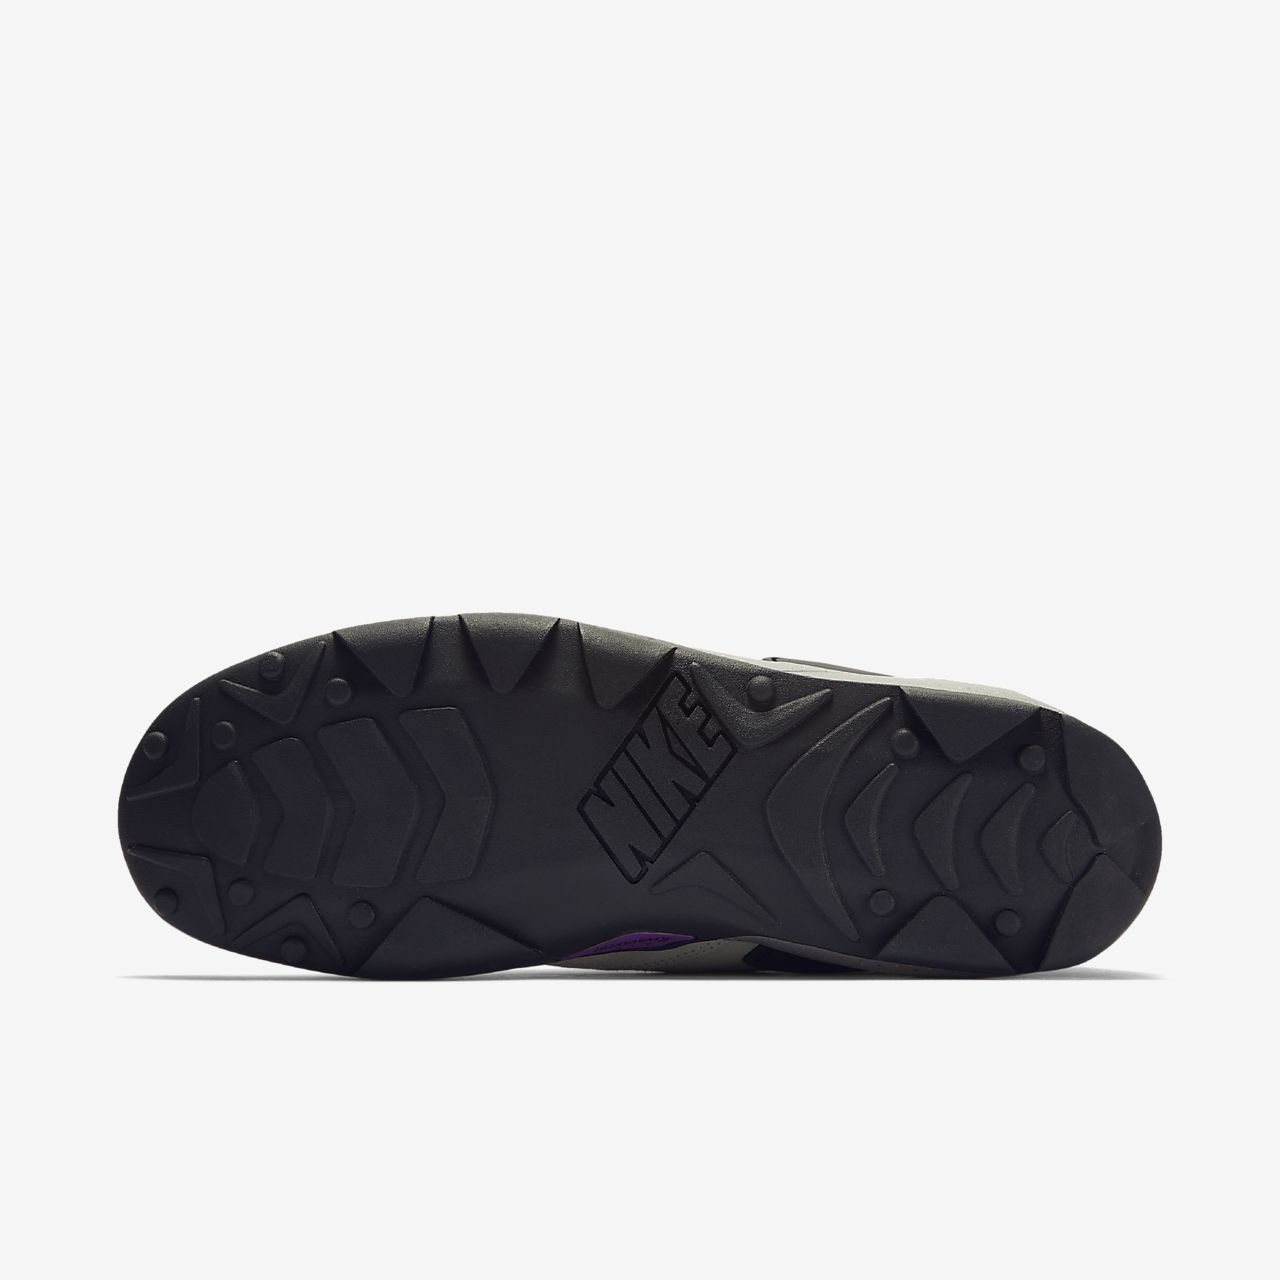 Chaussure Nike Air Cqospc Acg Homme Revaderchi Pour Be FKJl1c